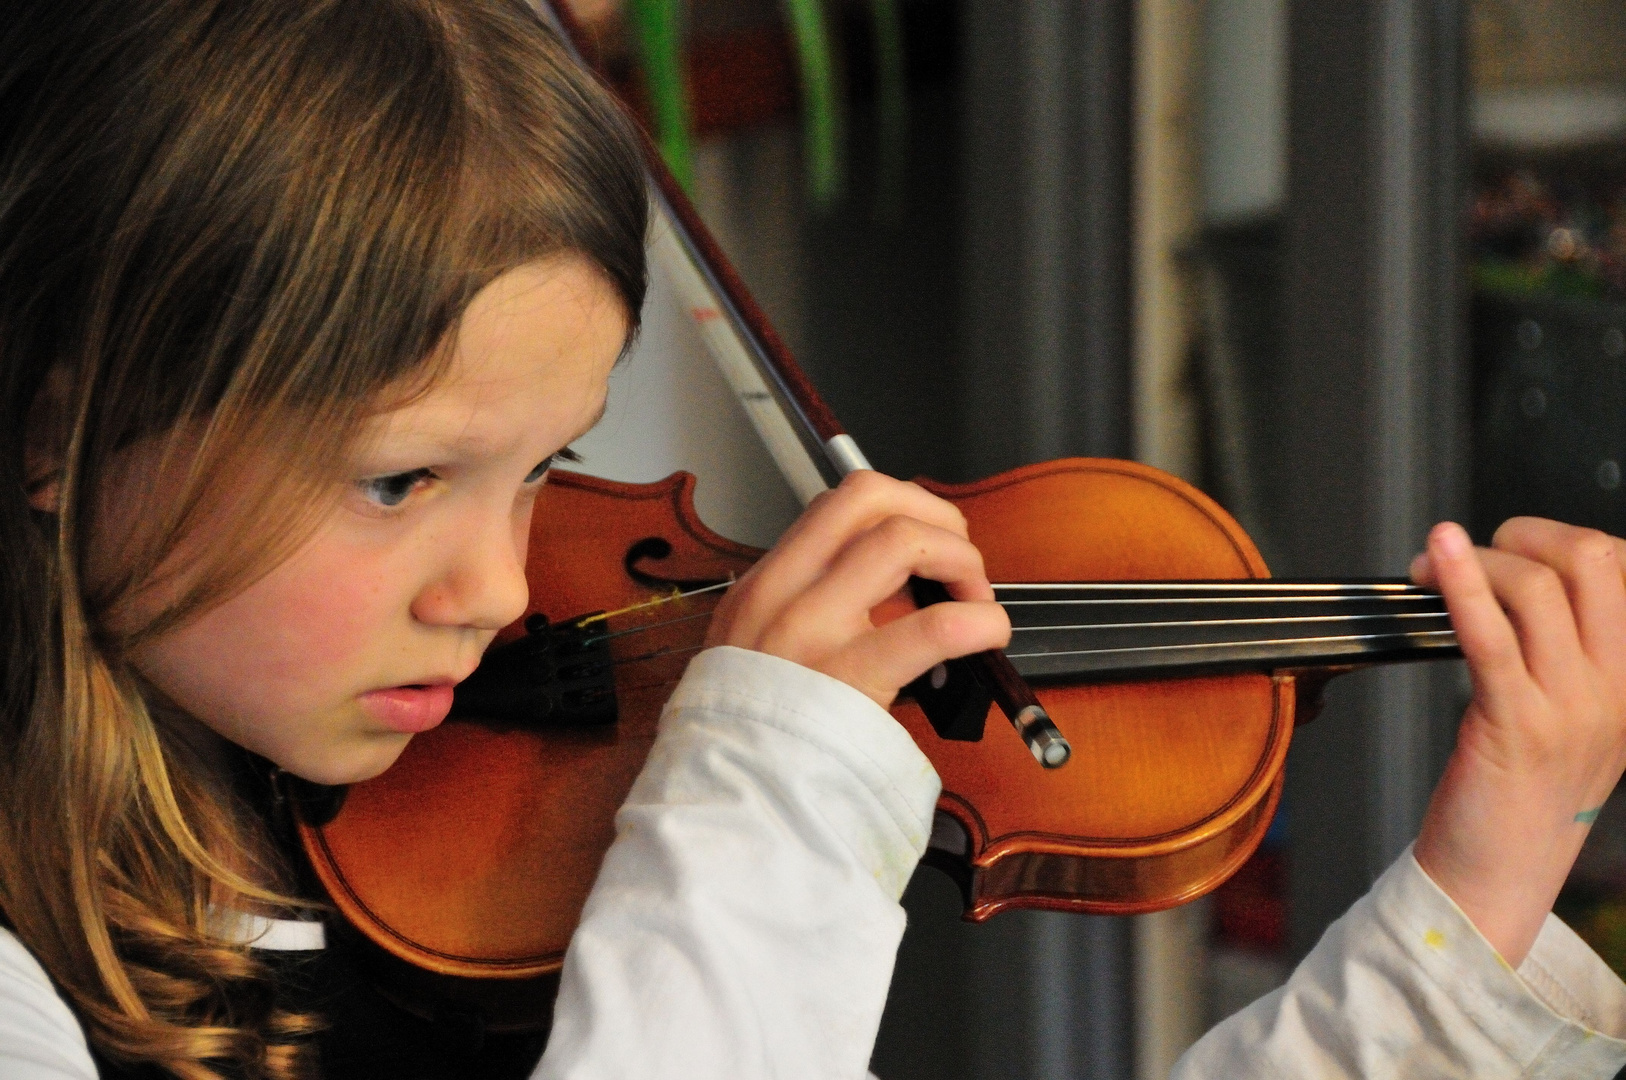 Noor playing the violin